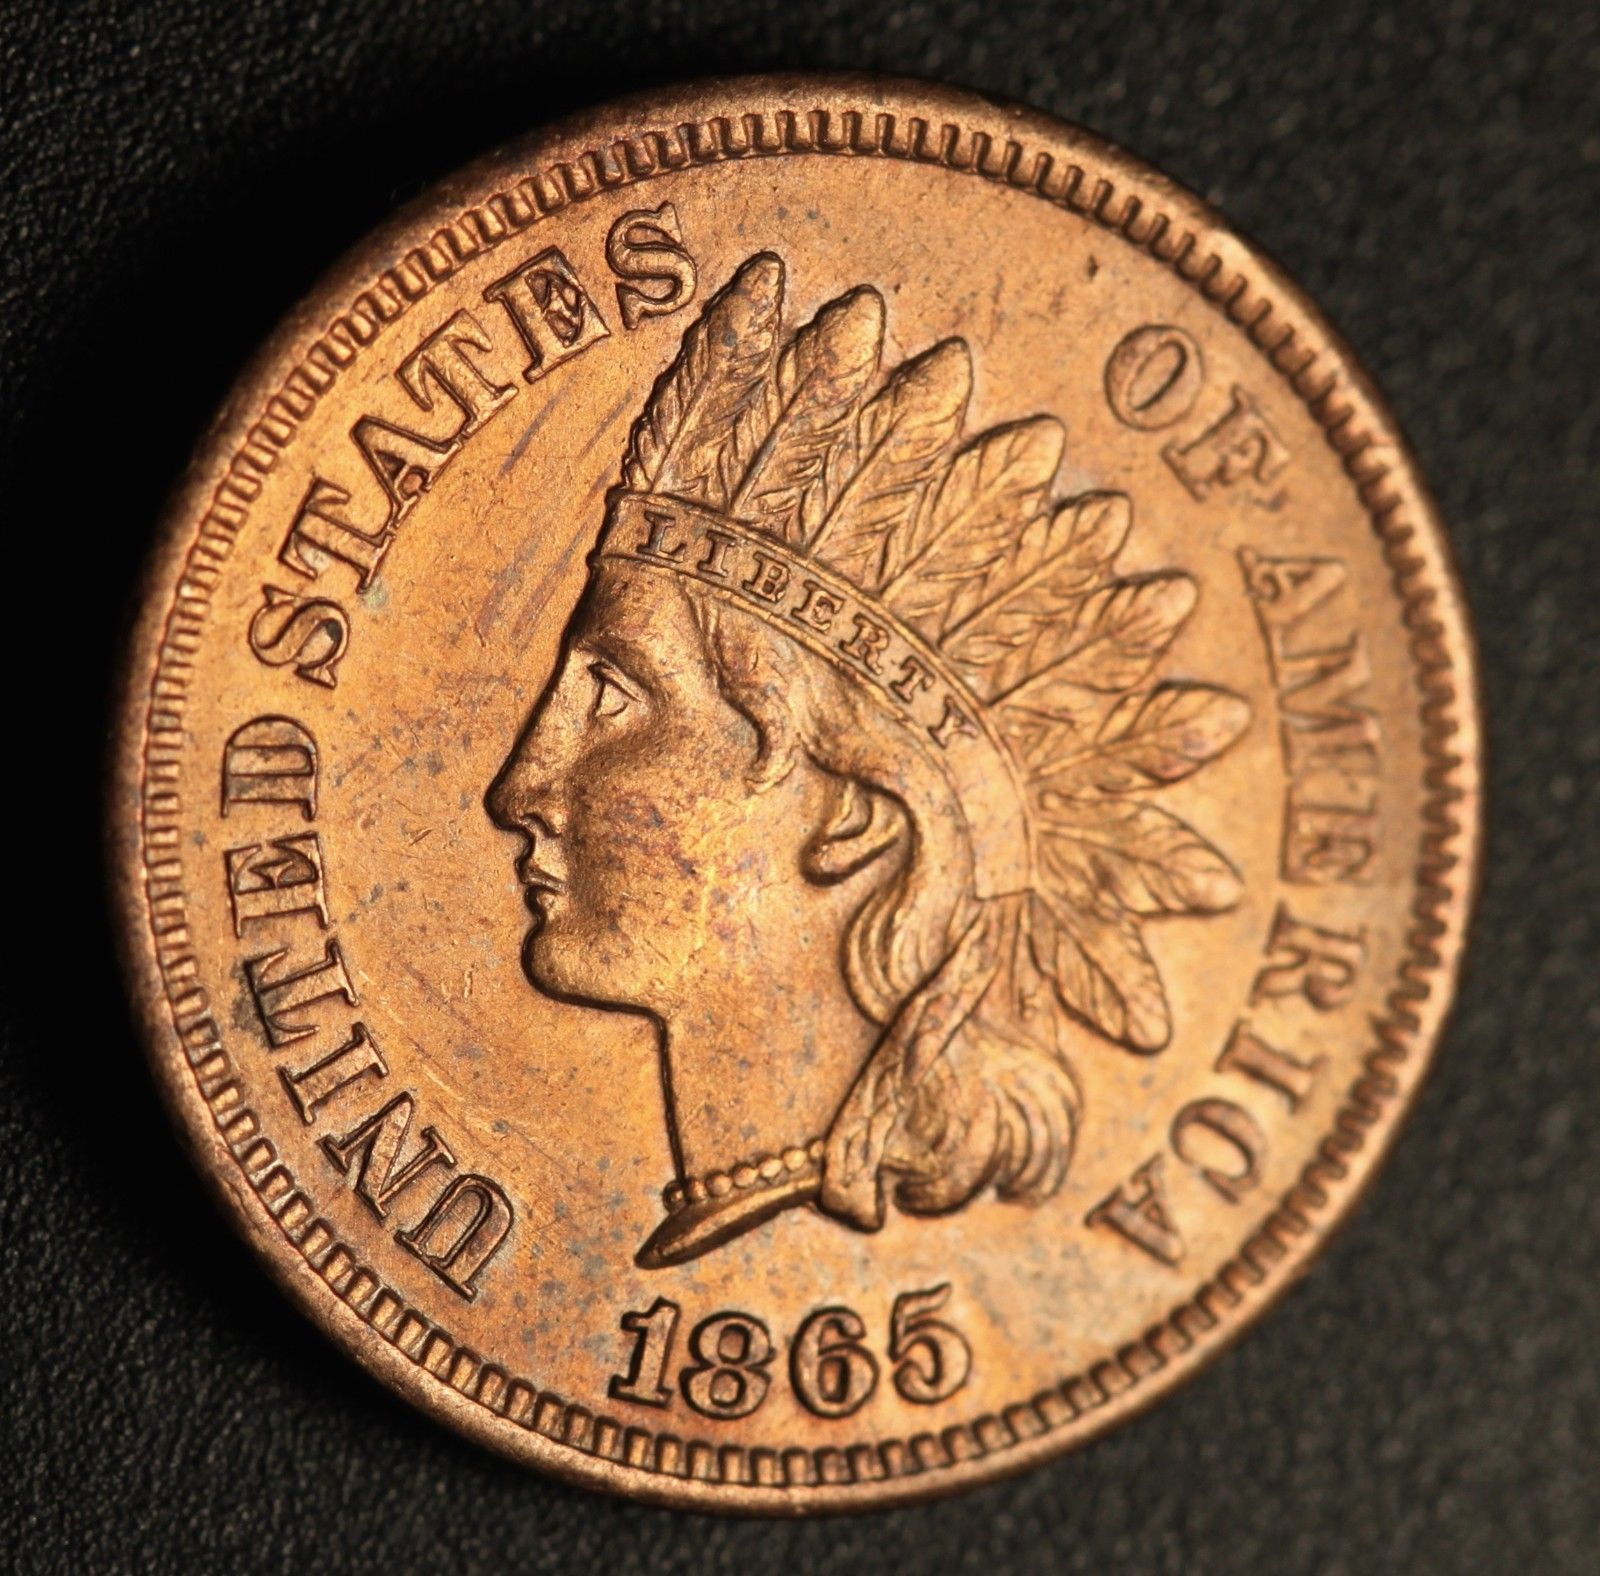 1865 Plain RPD-006 Indian Head Penny - Photo by Ed Nathanson